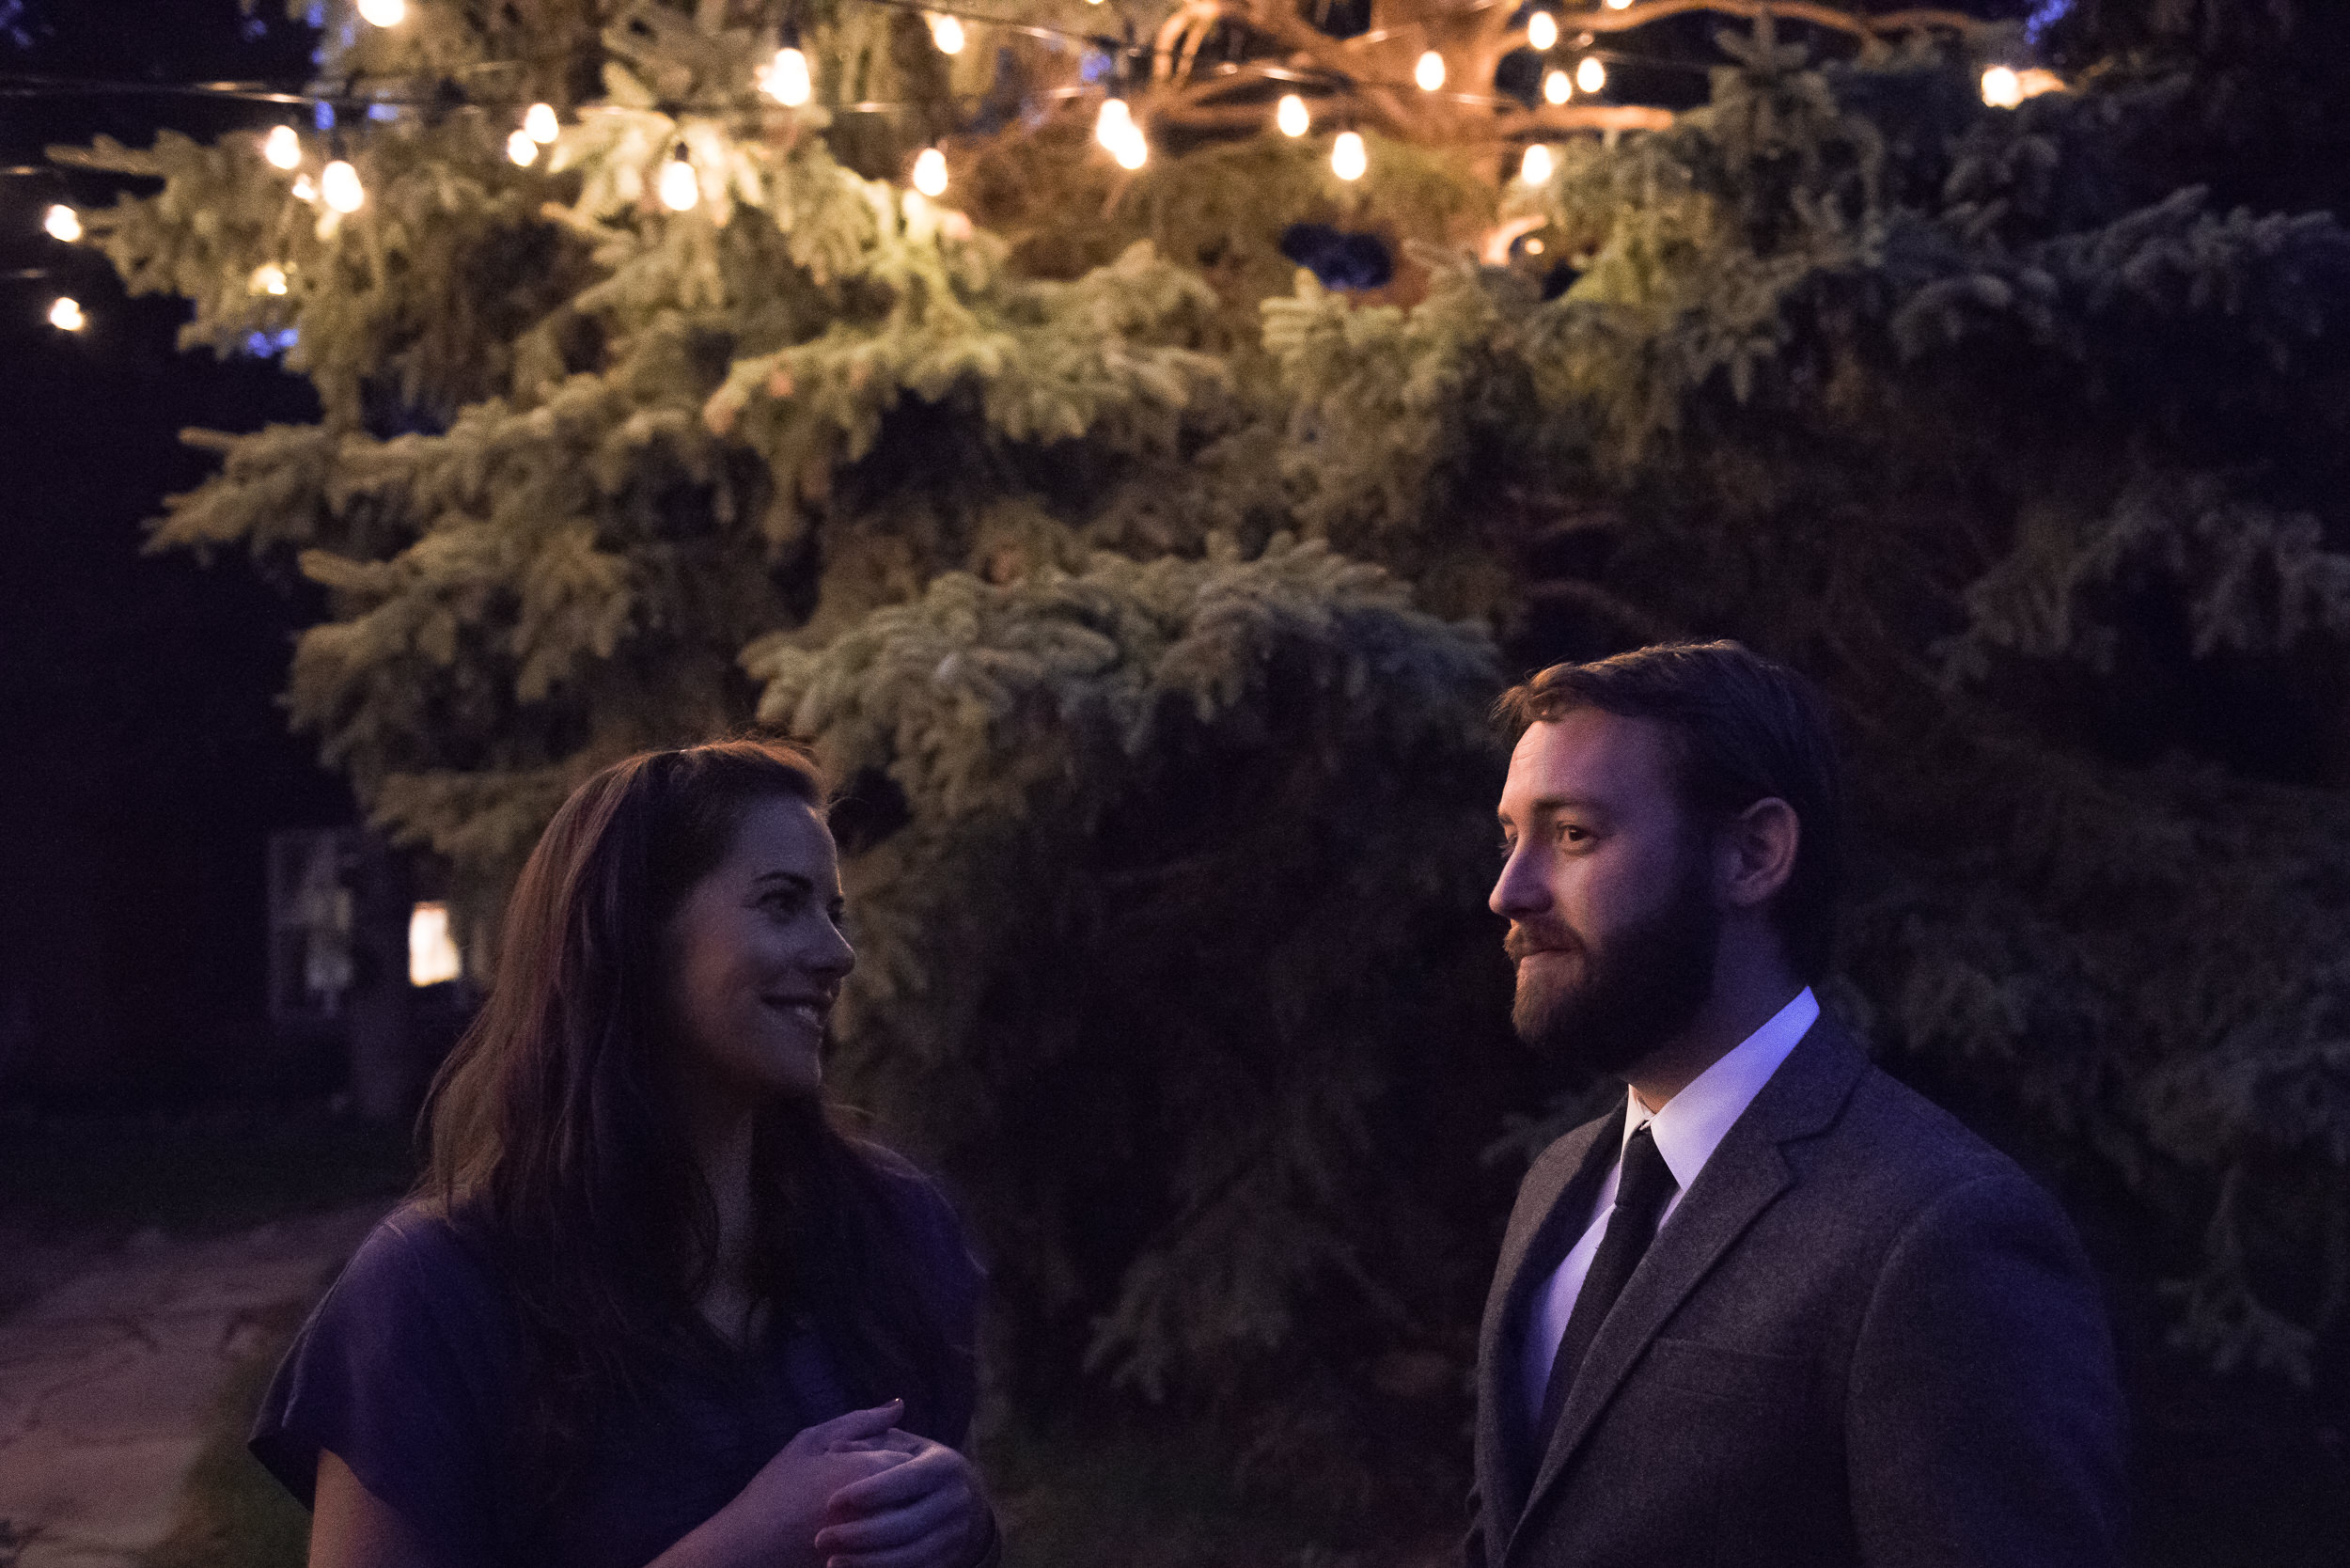 Molly Rees Photo - Documentary Wedding Photography in Denver, Colorado - outdoor reception at night by M. Menschel